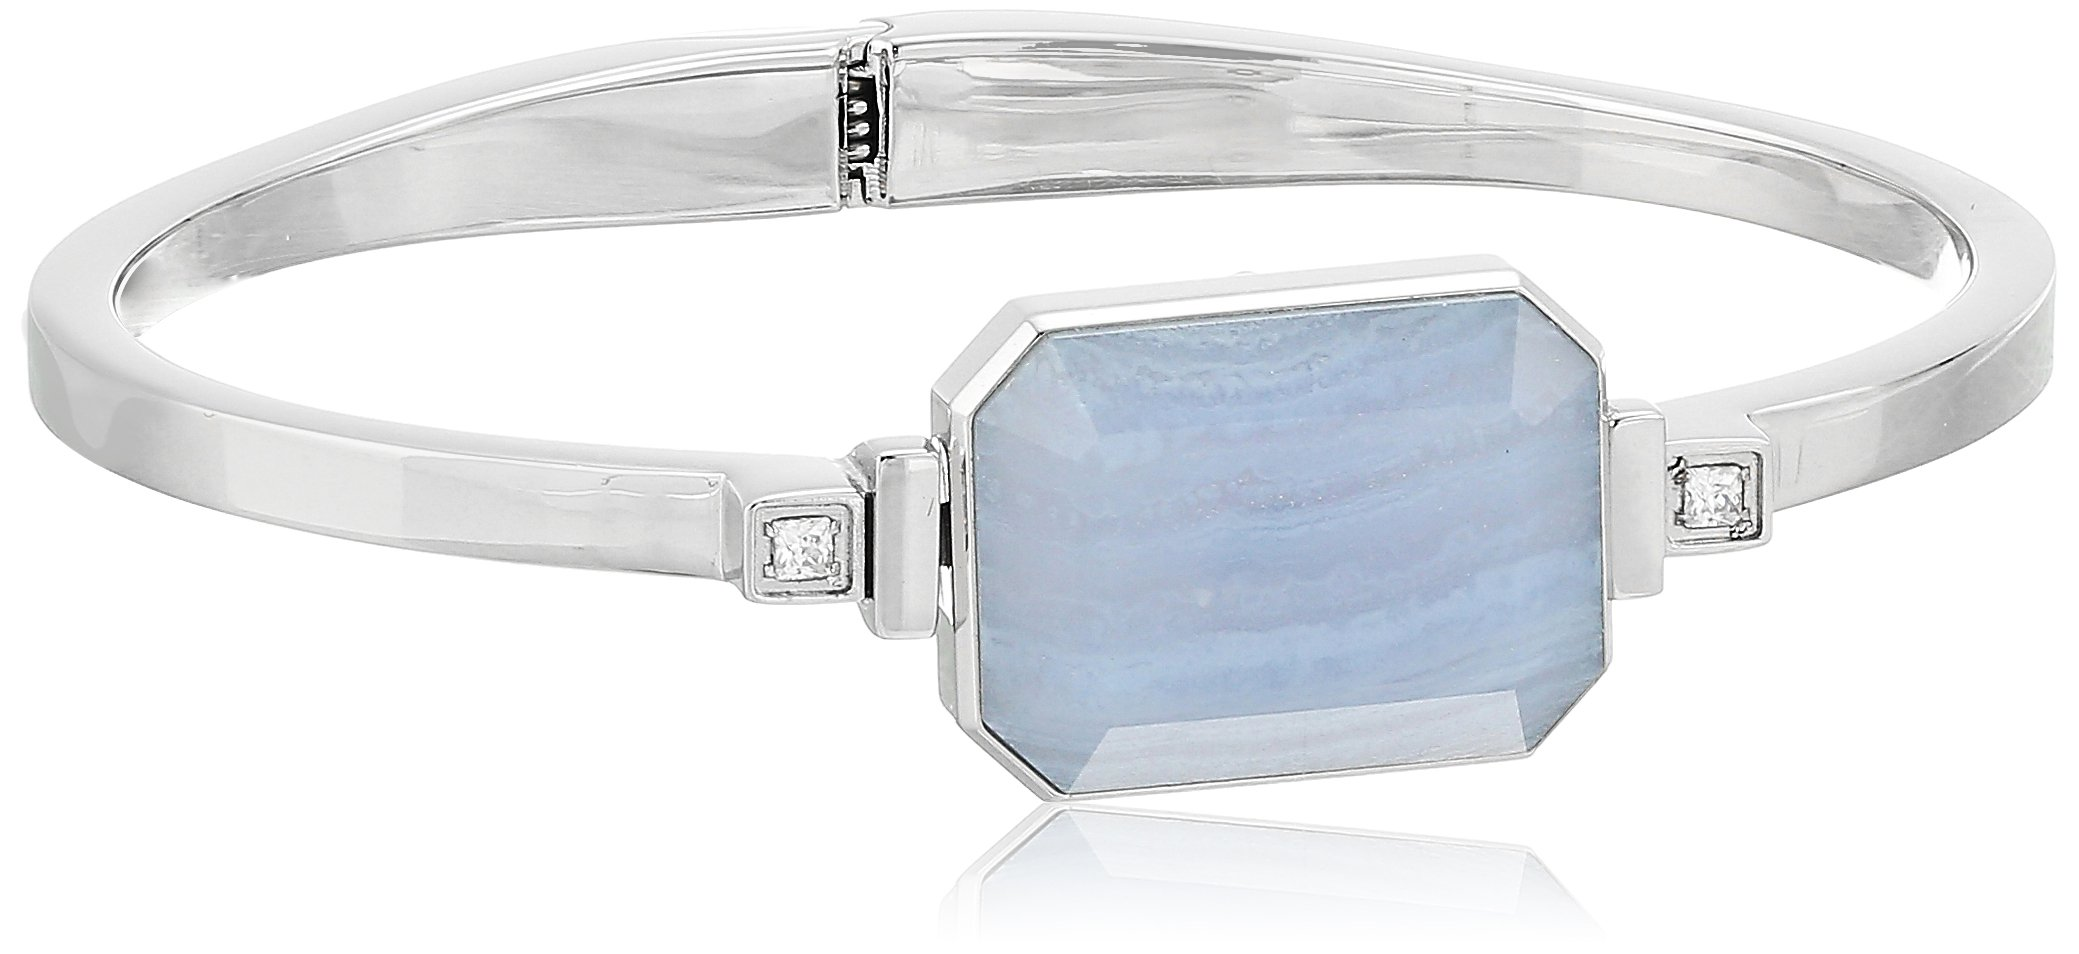 Ringly Luxe - Activity Tracker + Mobile Alerts + Meditation Smart Bracelet by RINGLY (Image #2)